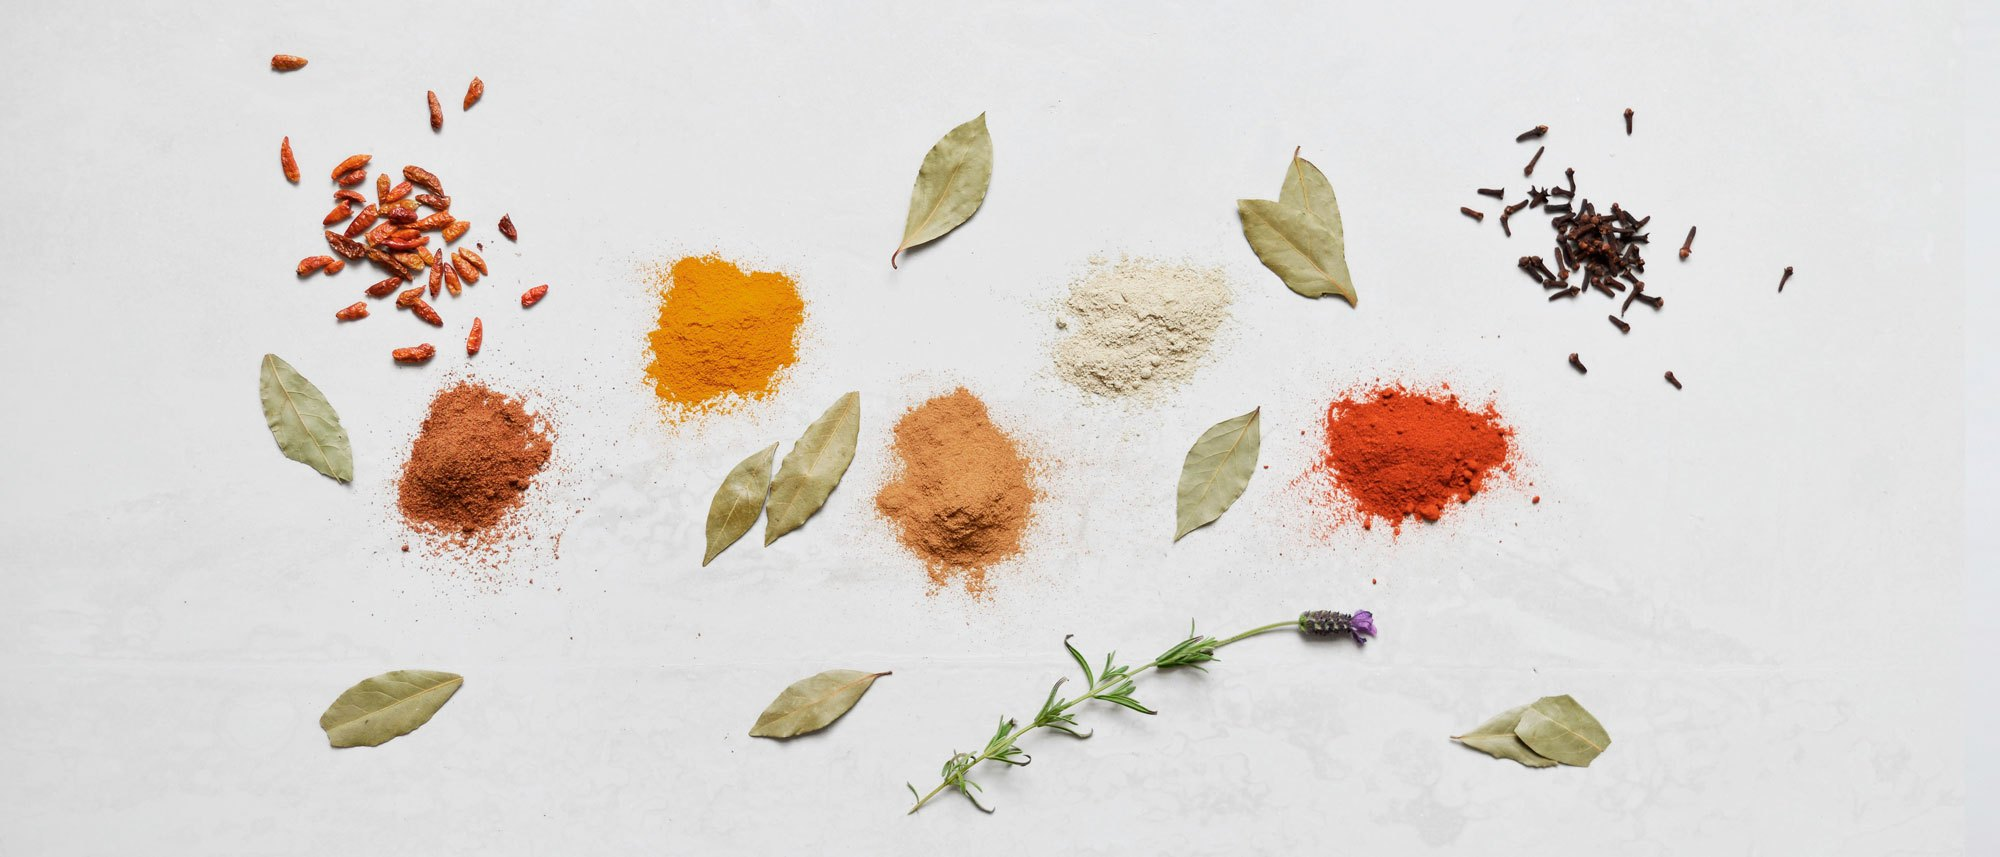 spices-amaranth-eleazarlazaro-web